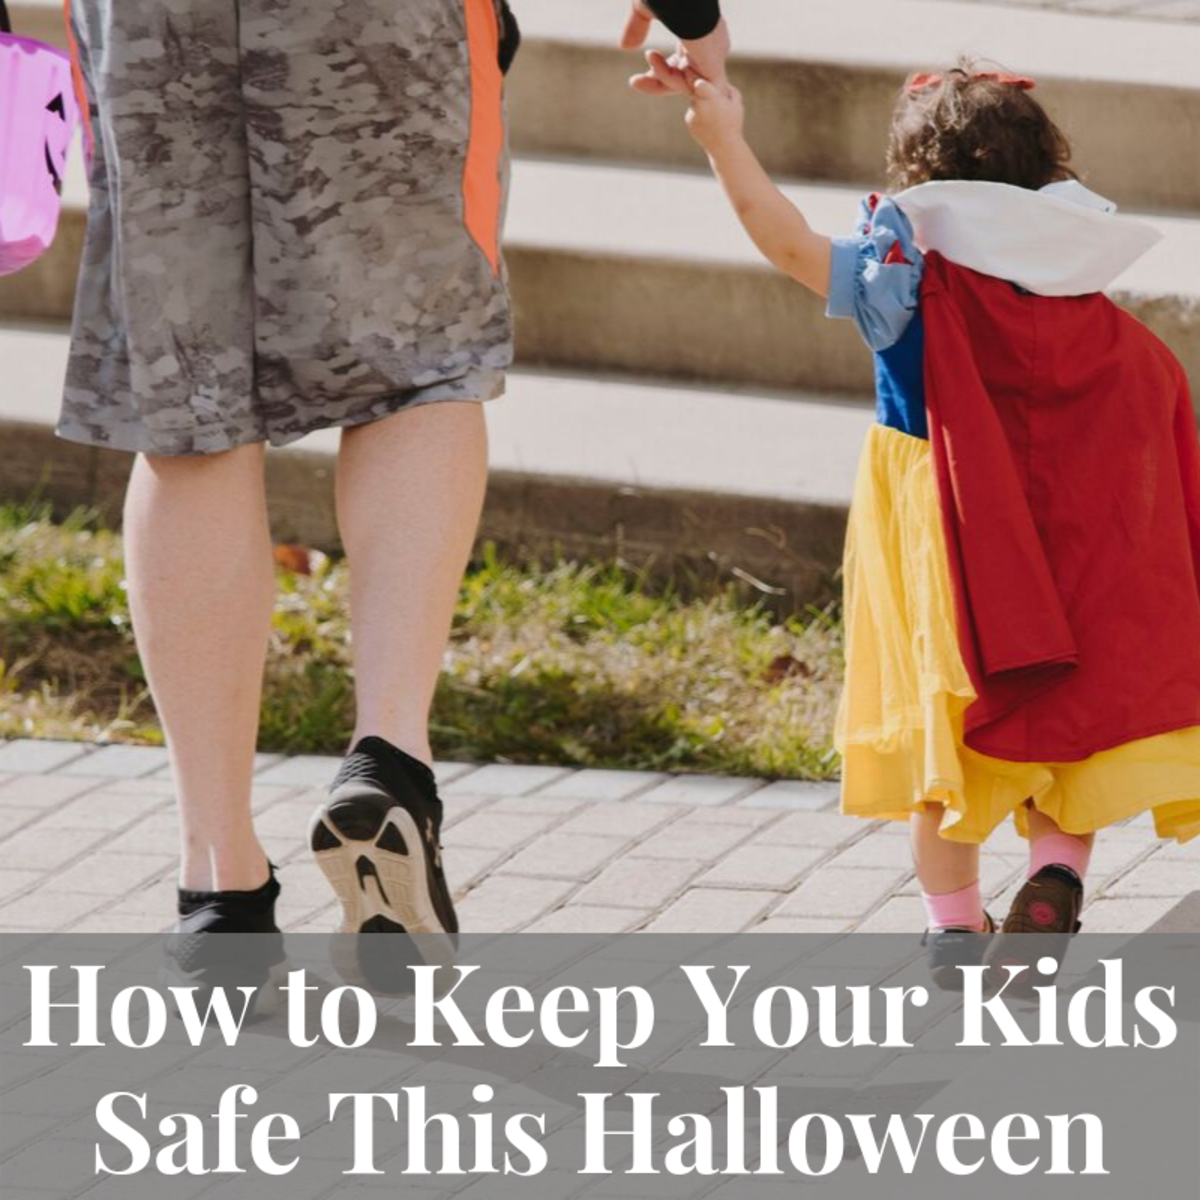 Halloween Safety for Your Little Ones